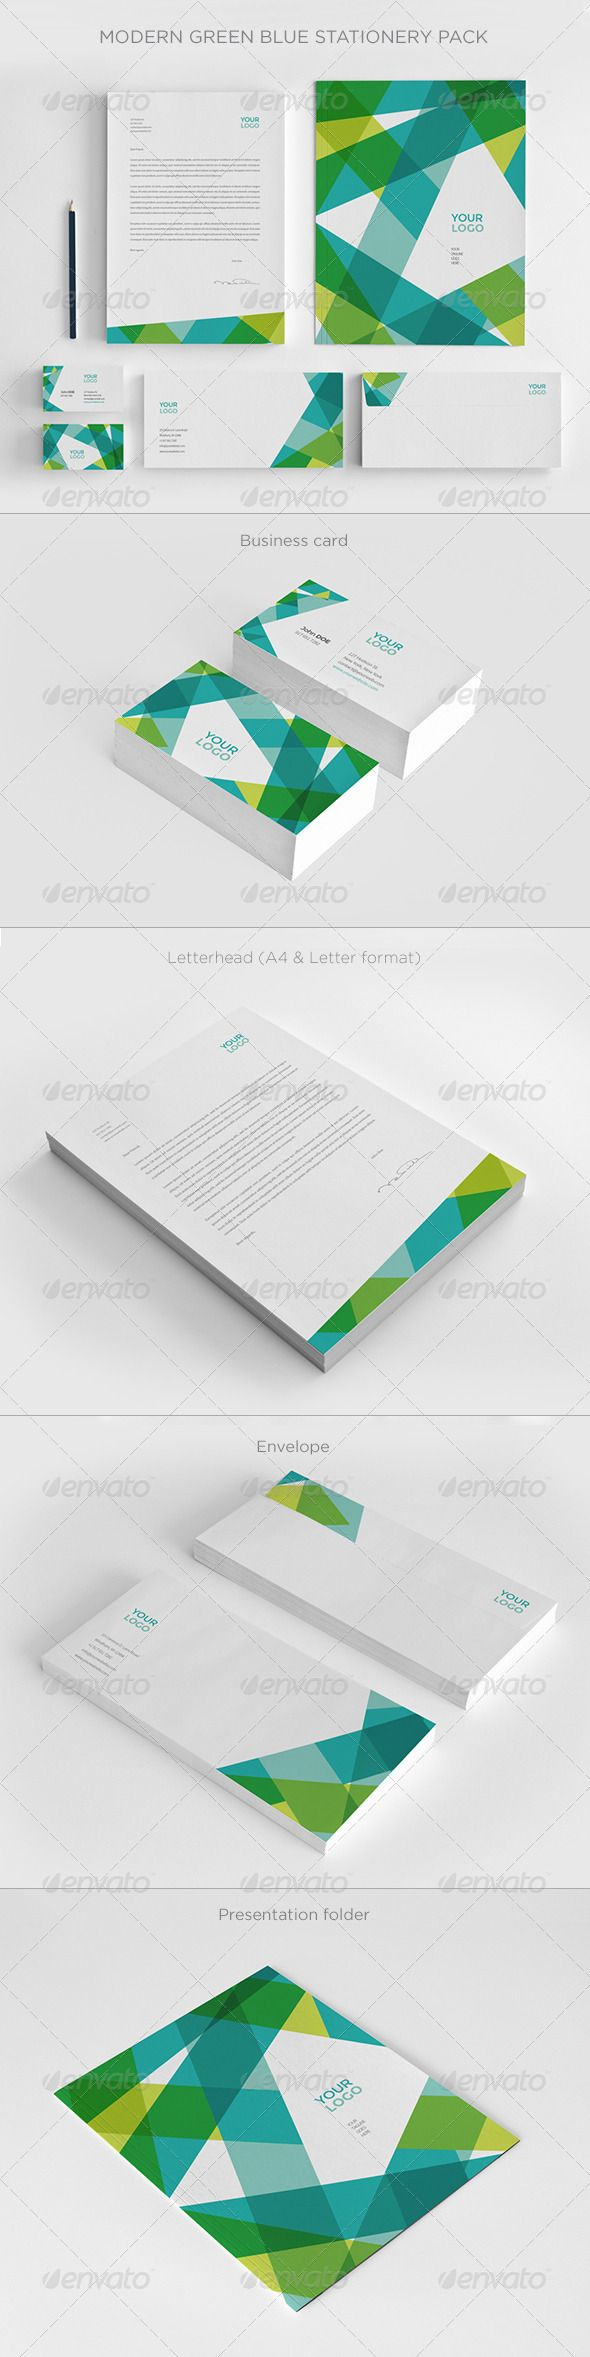 Modern Green Blue Stationery - Stationery Print Templates